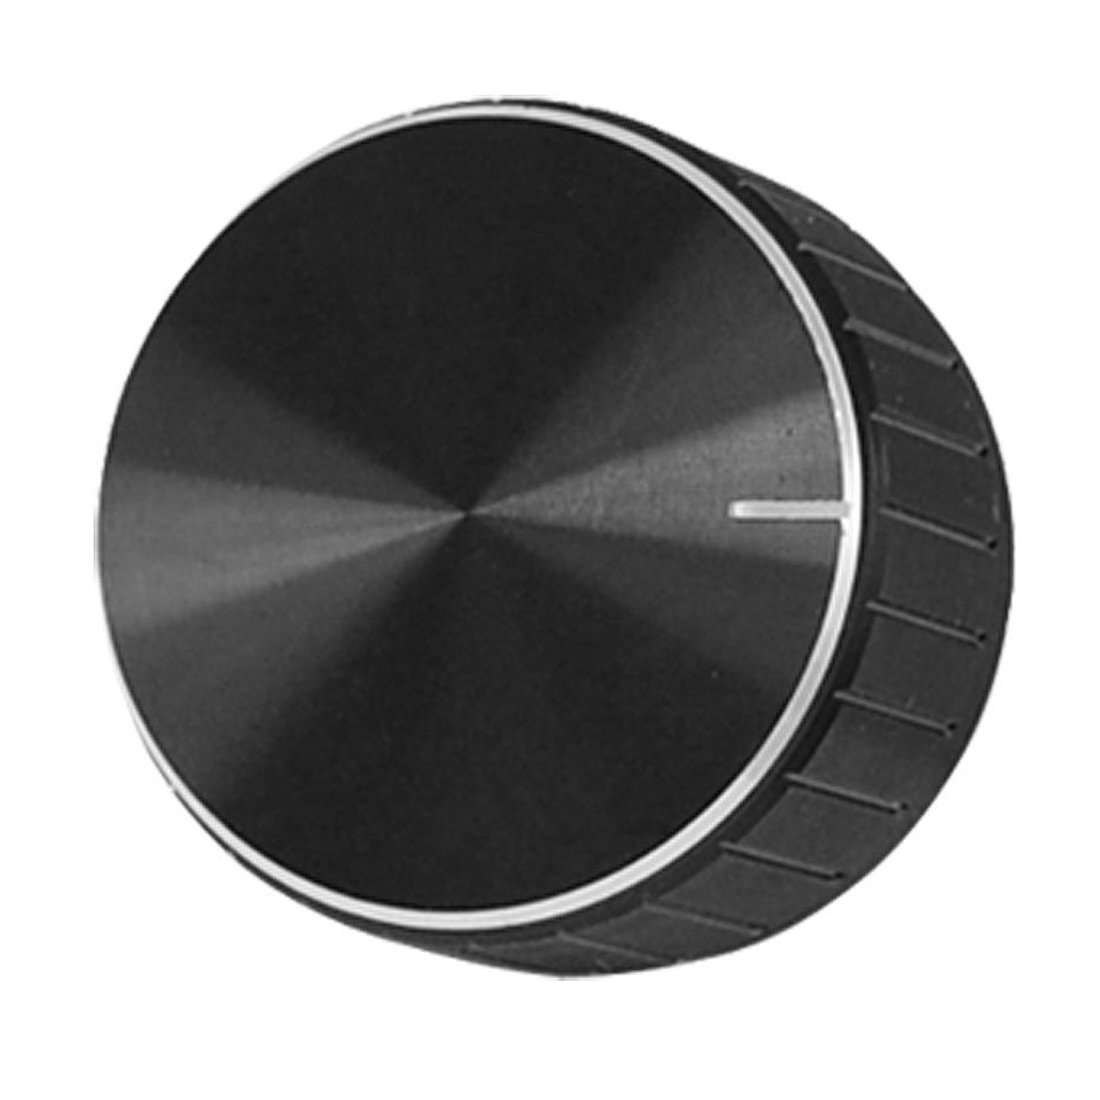 IMC Hot Black Aluminum Volume Control Amplifier Knob Wheel